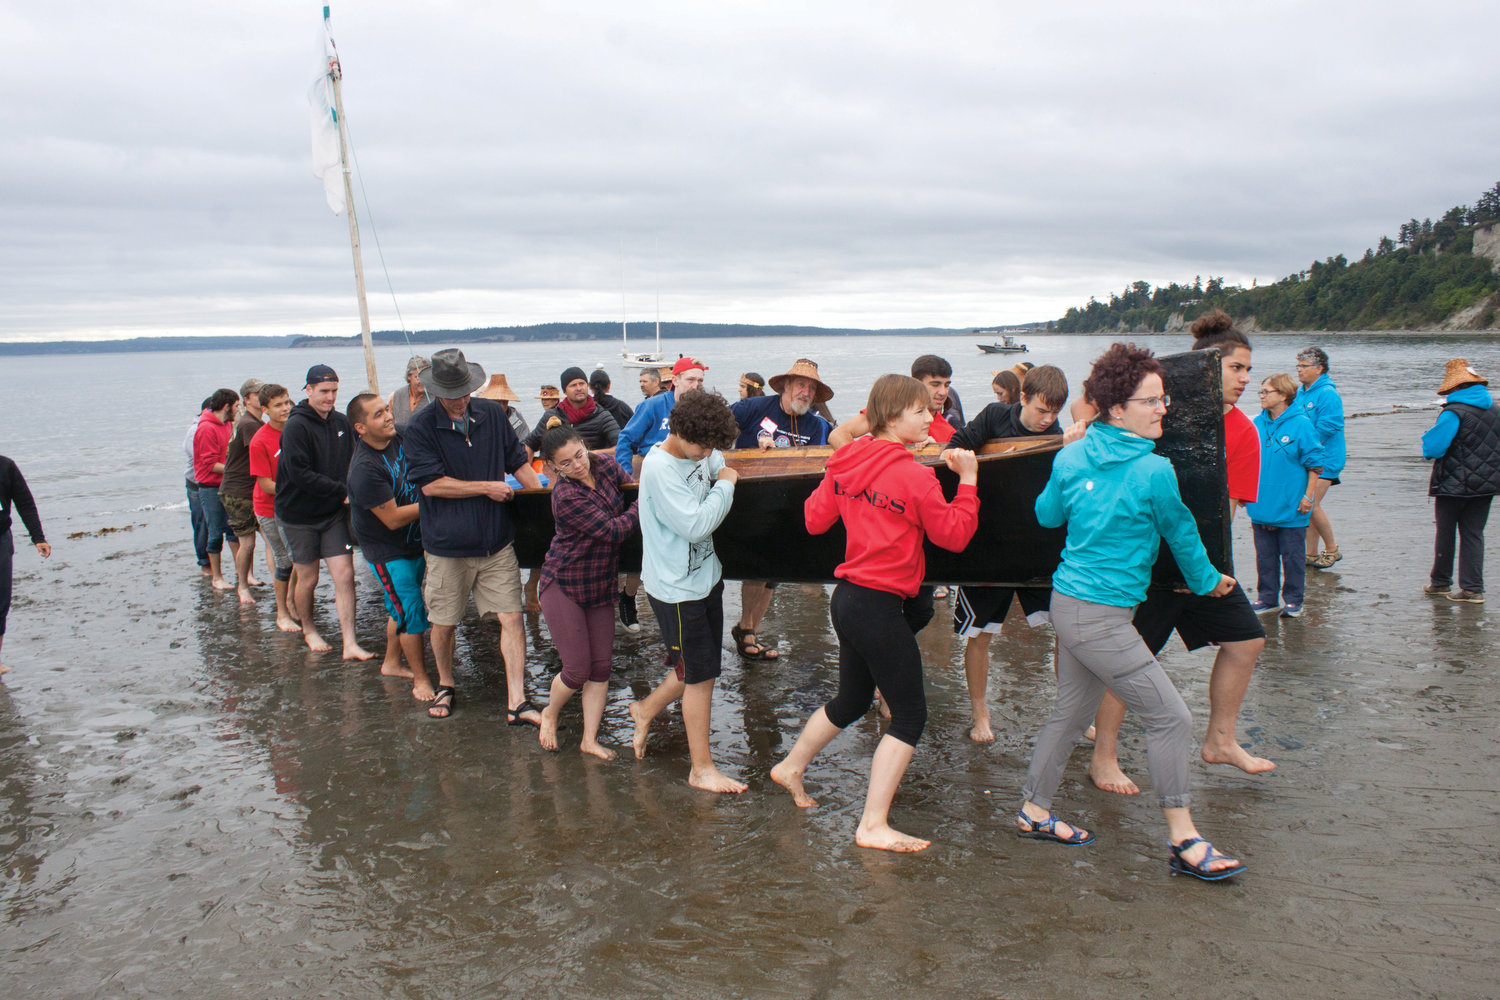 Tribes from across Western Washington landed on the shores of Fort Worden July 17. Port Townsend is one stop along the journey, which will end at Lummi Island.